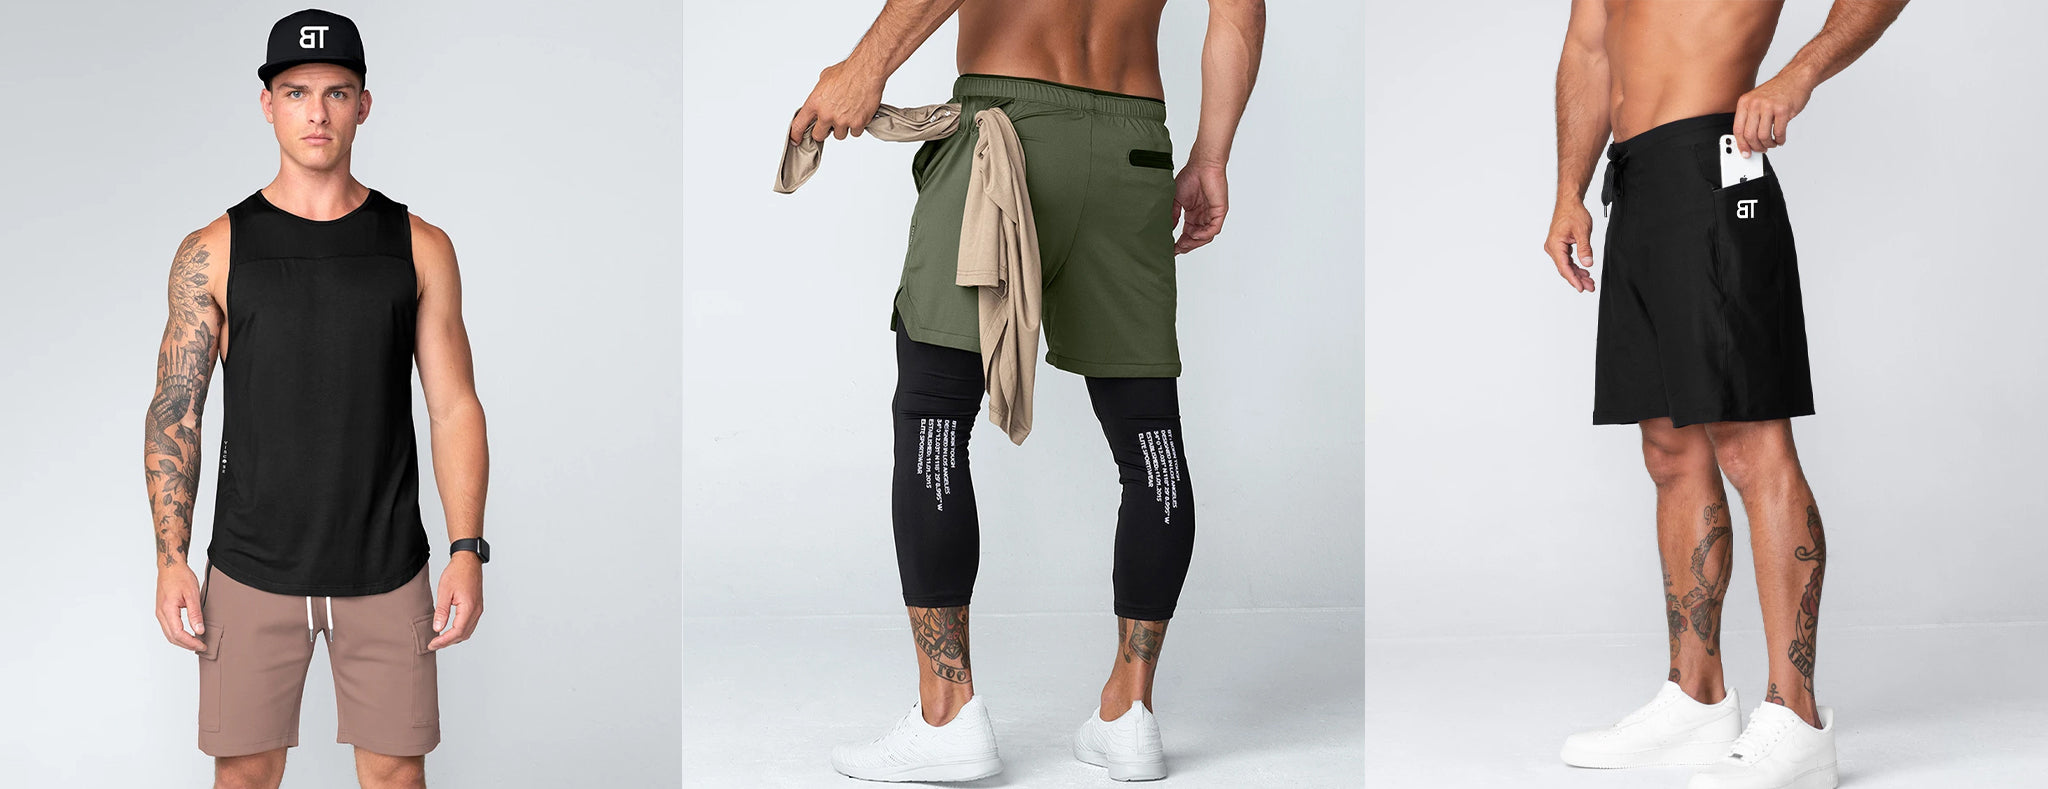 WHAT ARE THE IDIOSYNCRASIES THAT WE CONSIDERED WHILE RANKING THESE DELUXE WORKOUT SHORTS